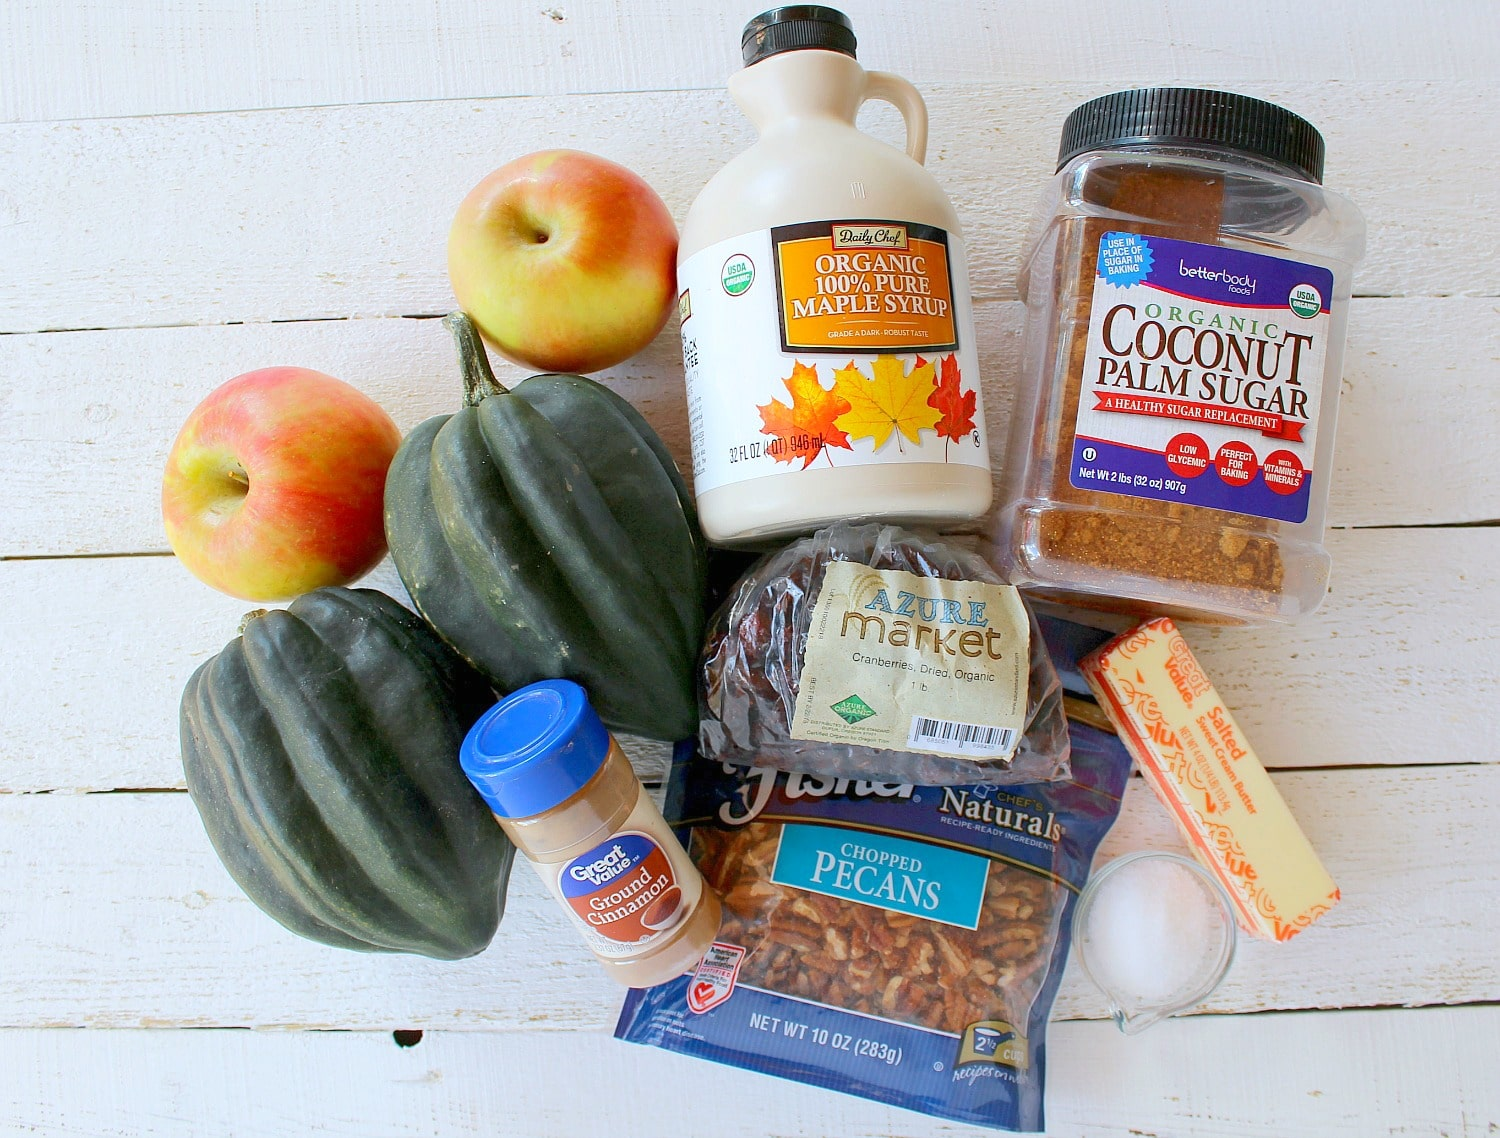 Assemble your ingredients: Acorn squash, apples, pecans, dried cranberries, coconut sugar, butter, maple syrup, cinnamon and salt.